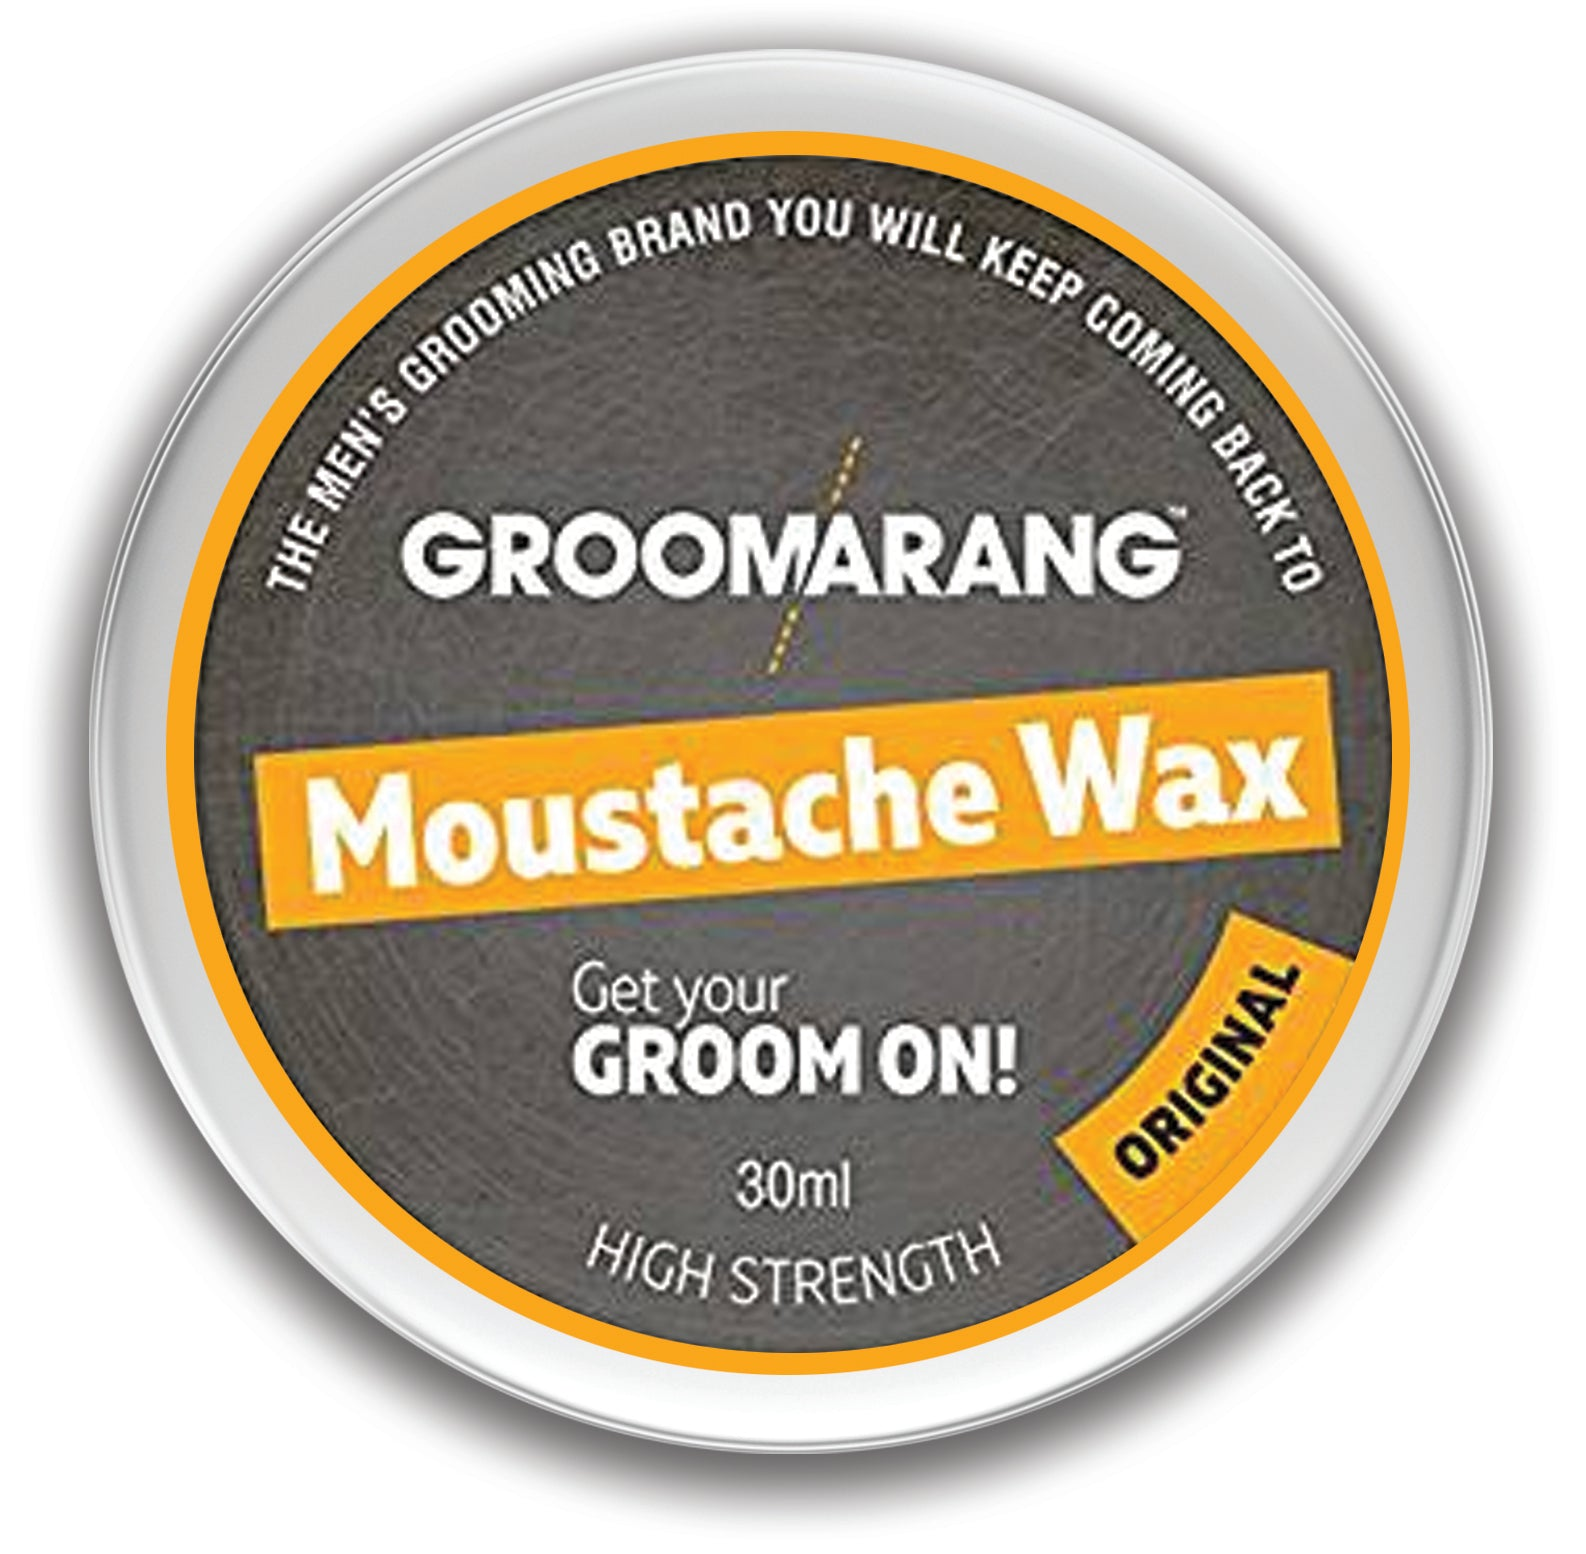 Groomarang Original Moustache Wax, Hair Styling Products by Groomarang